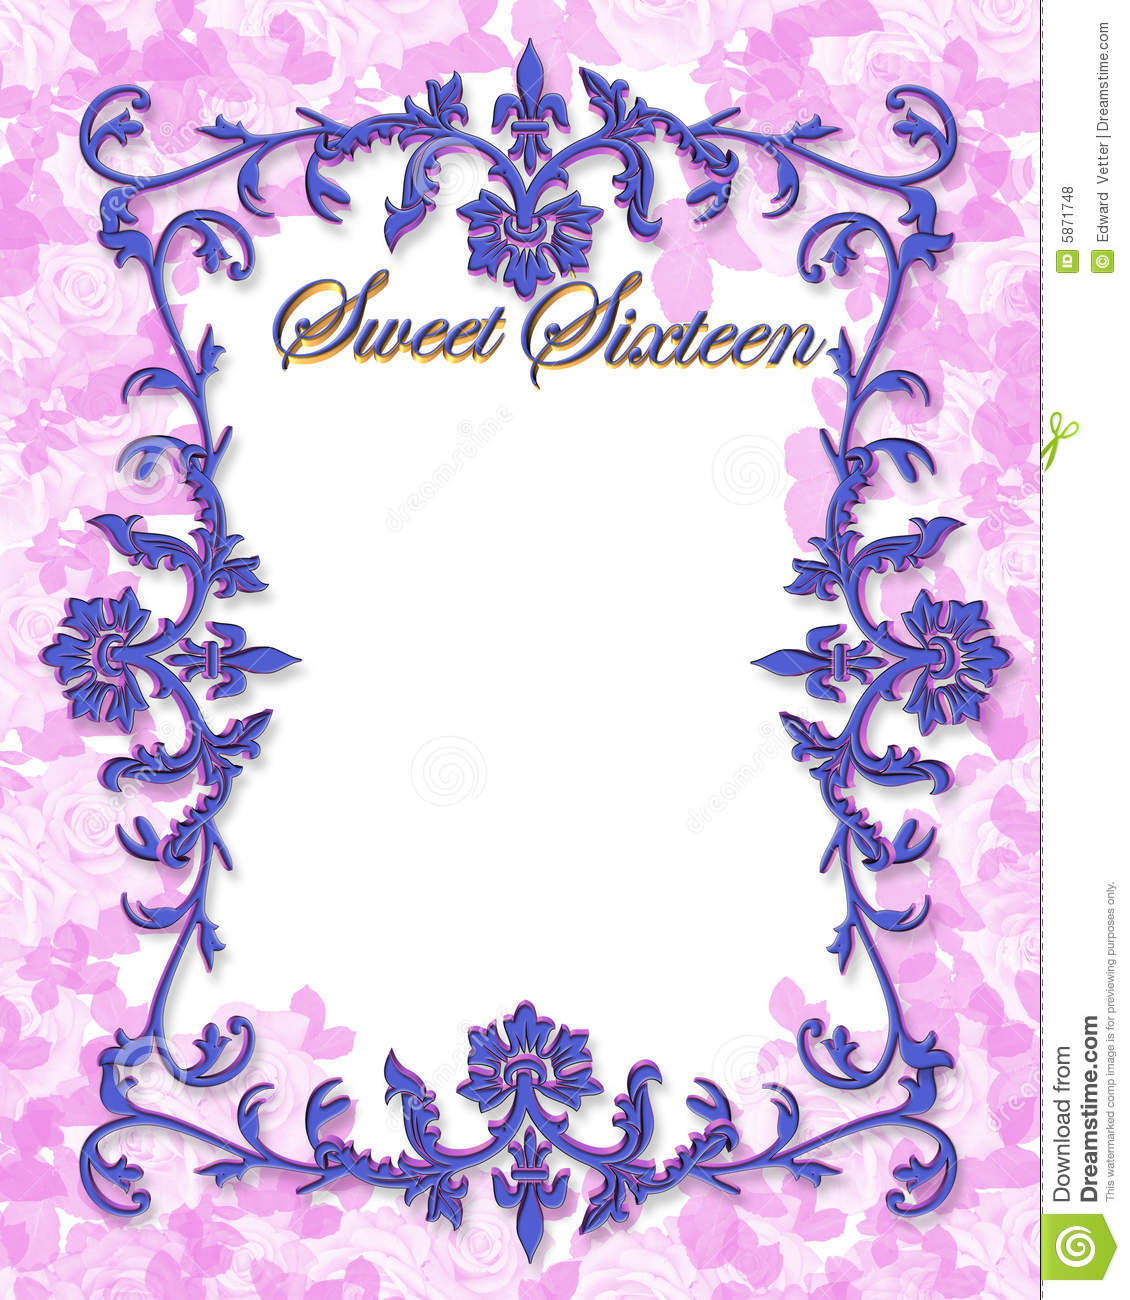 Sweet 16 Birthday Illustration For Ornamental Frame Background Border Or Invitation With Copy Space